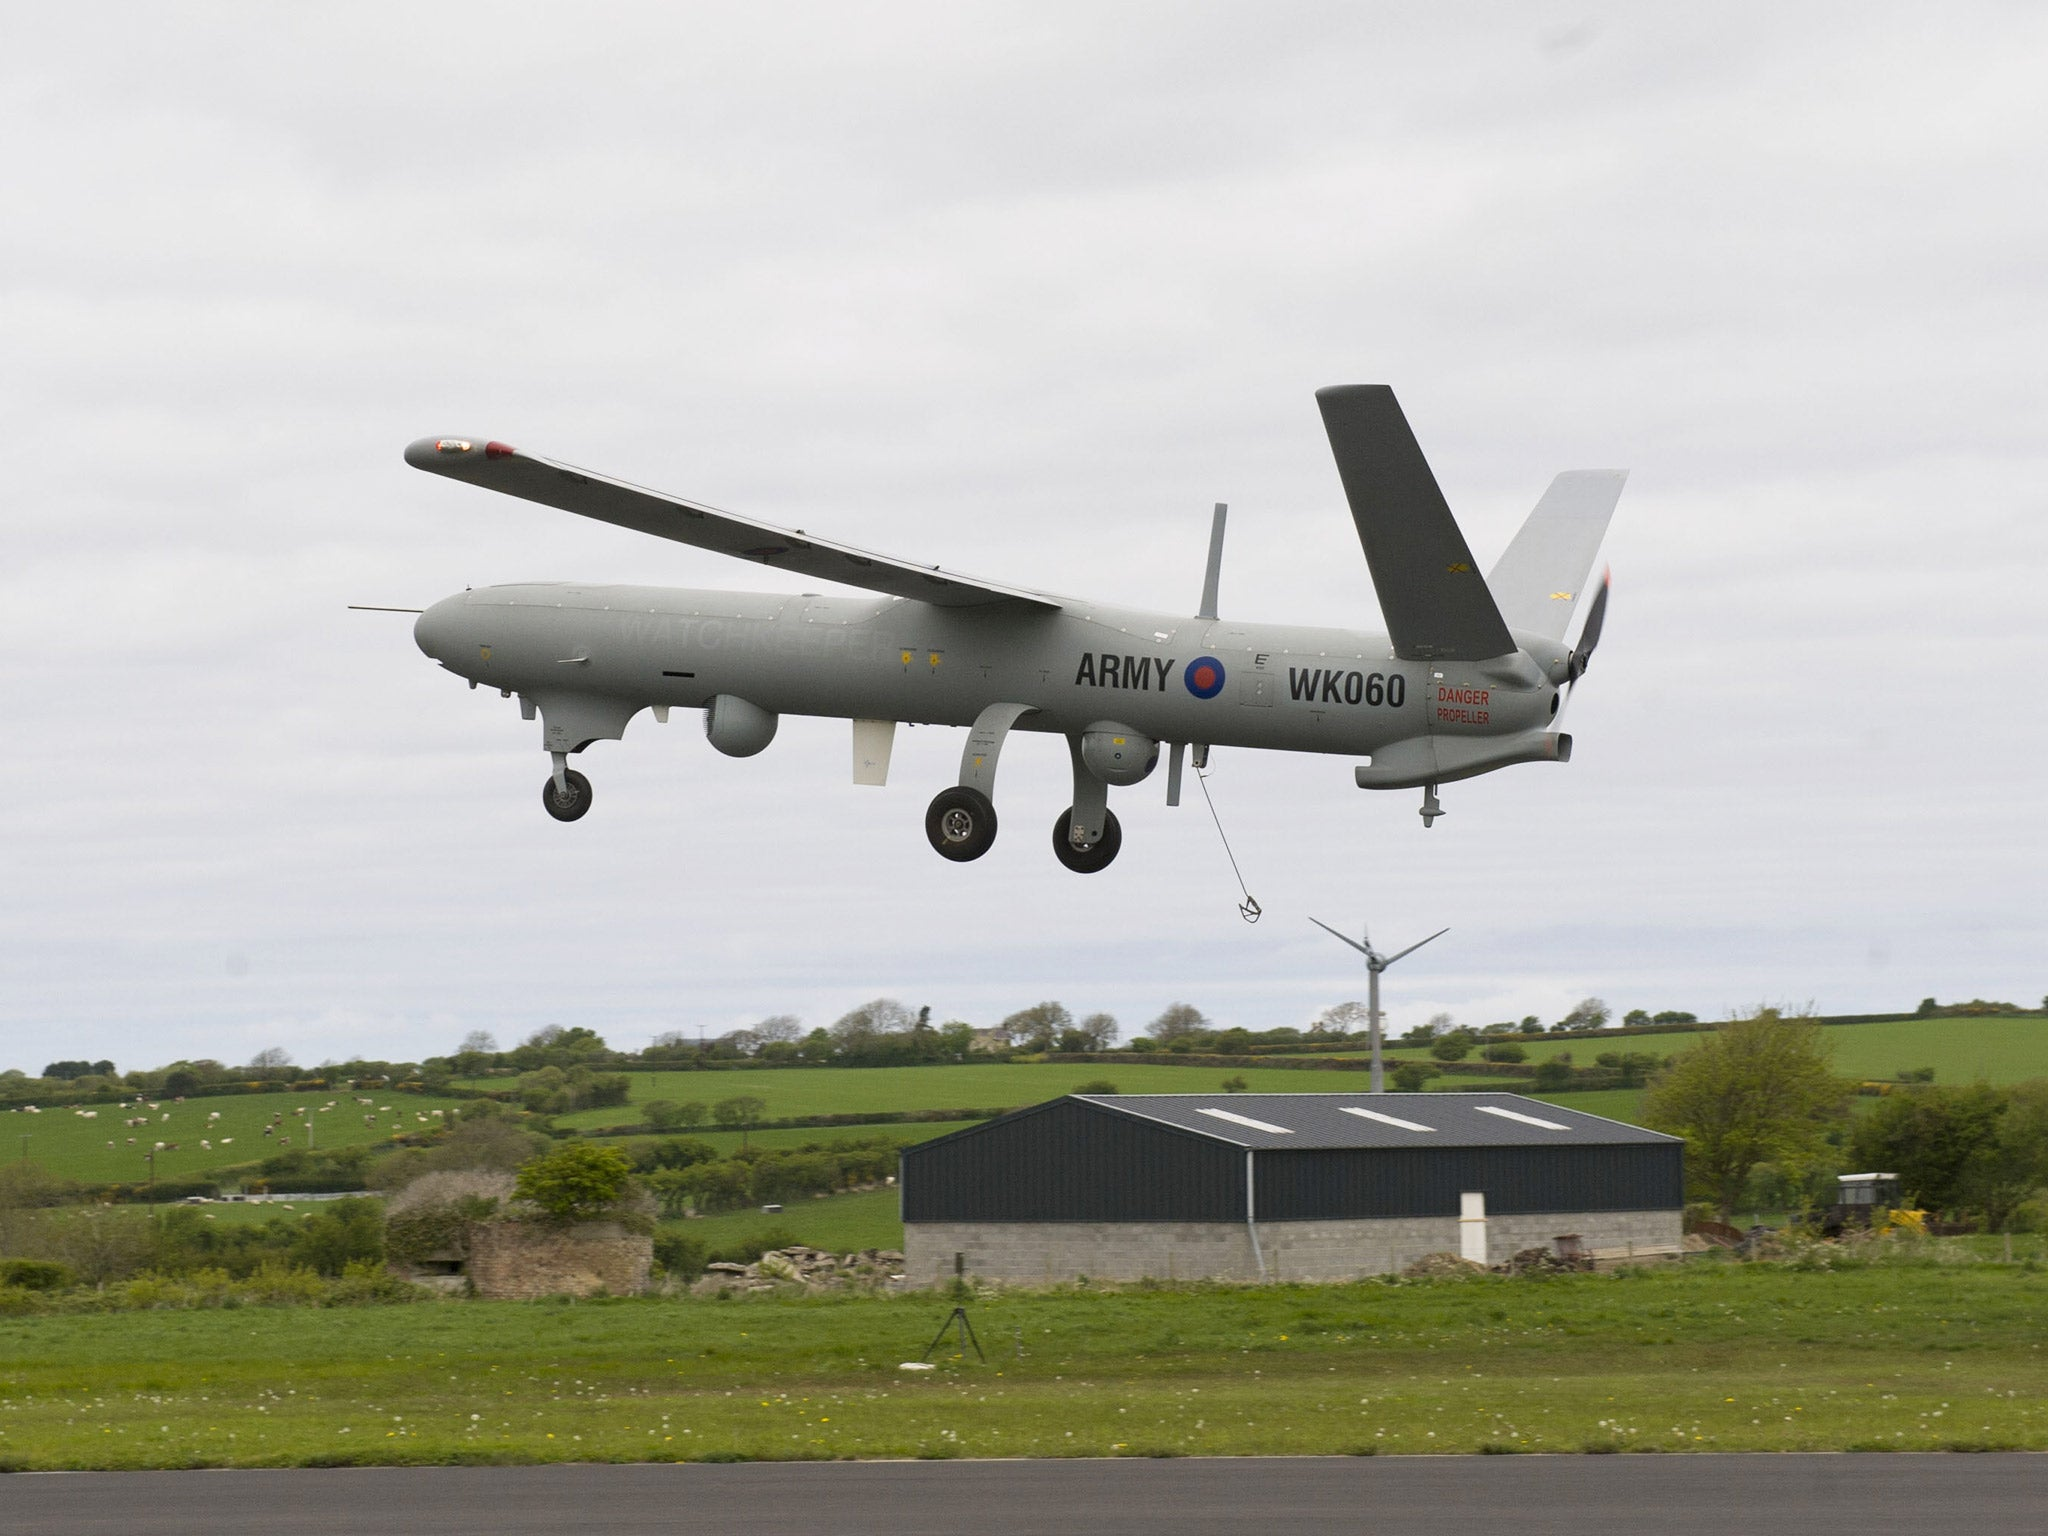 A £1m military drone flew over a packed primary school